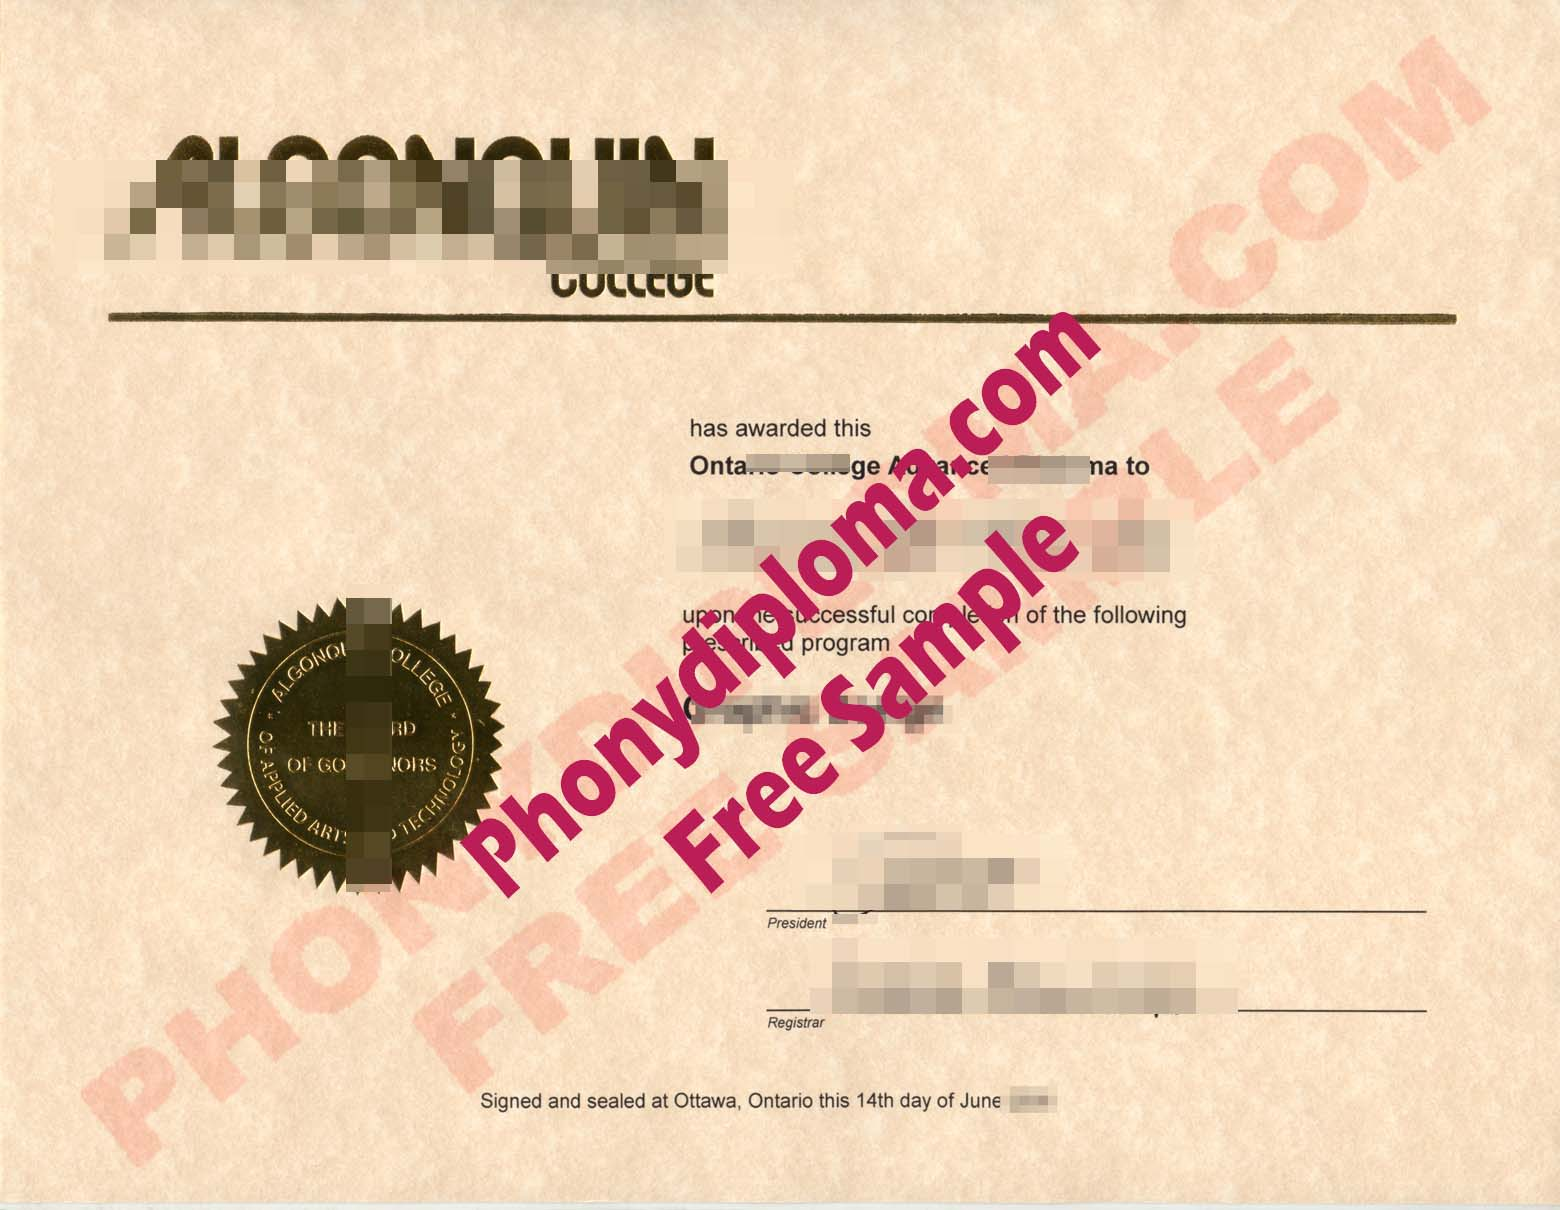 Algonquin College Free Sample From Phonydiploma